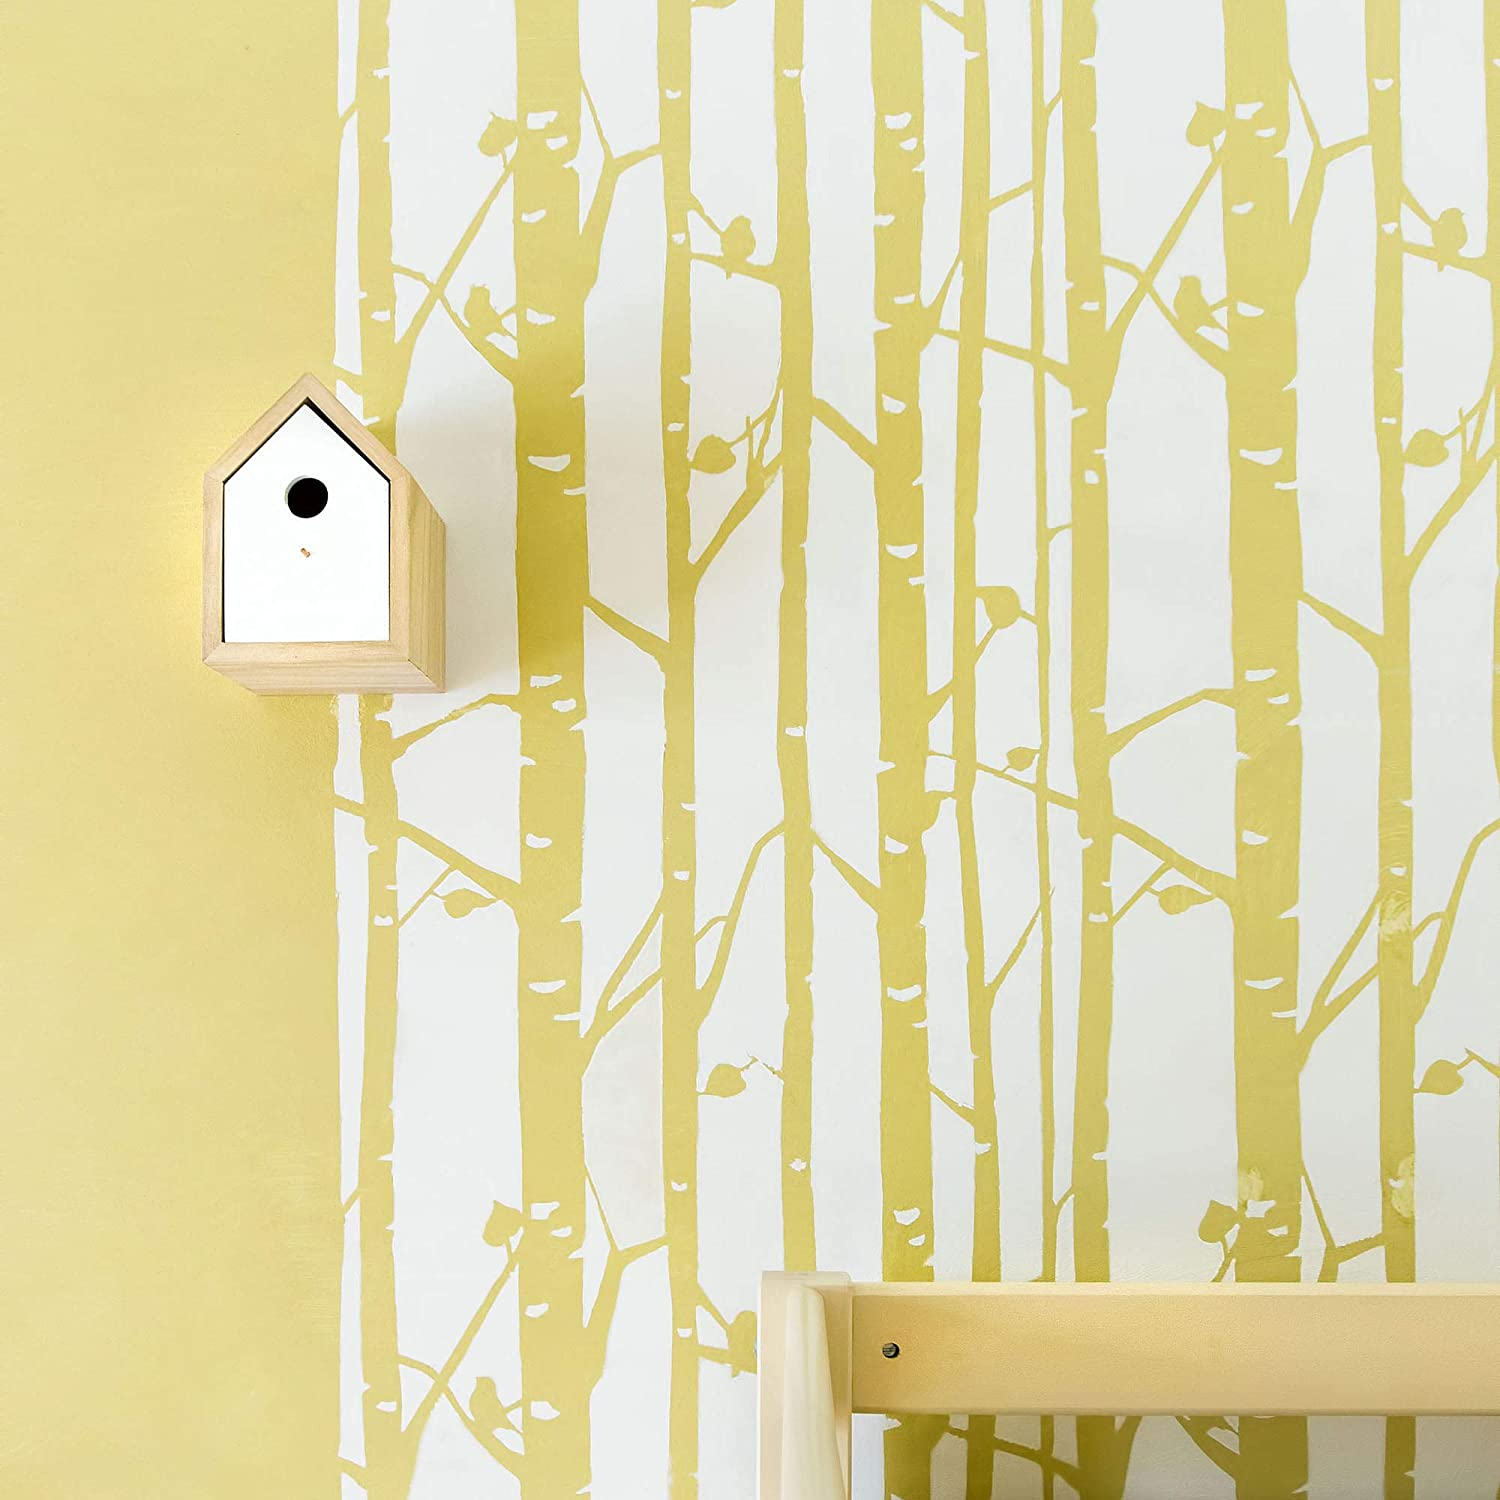 STENCILIT Birch Tree Wall Stencil for Painting - Scandinavian Wall Accent - Reusable Template - Large Mylar Washable Plastic - Repeatable Tree Pattern for Wall Décor